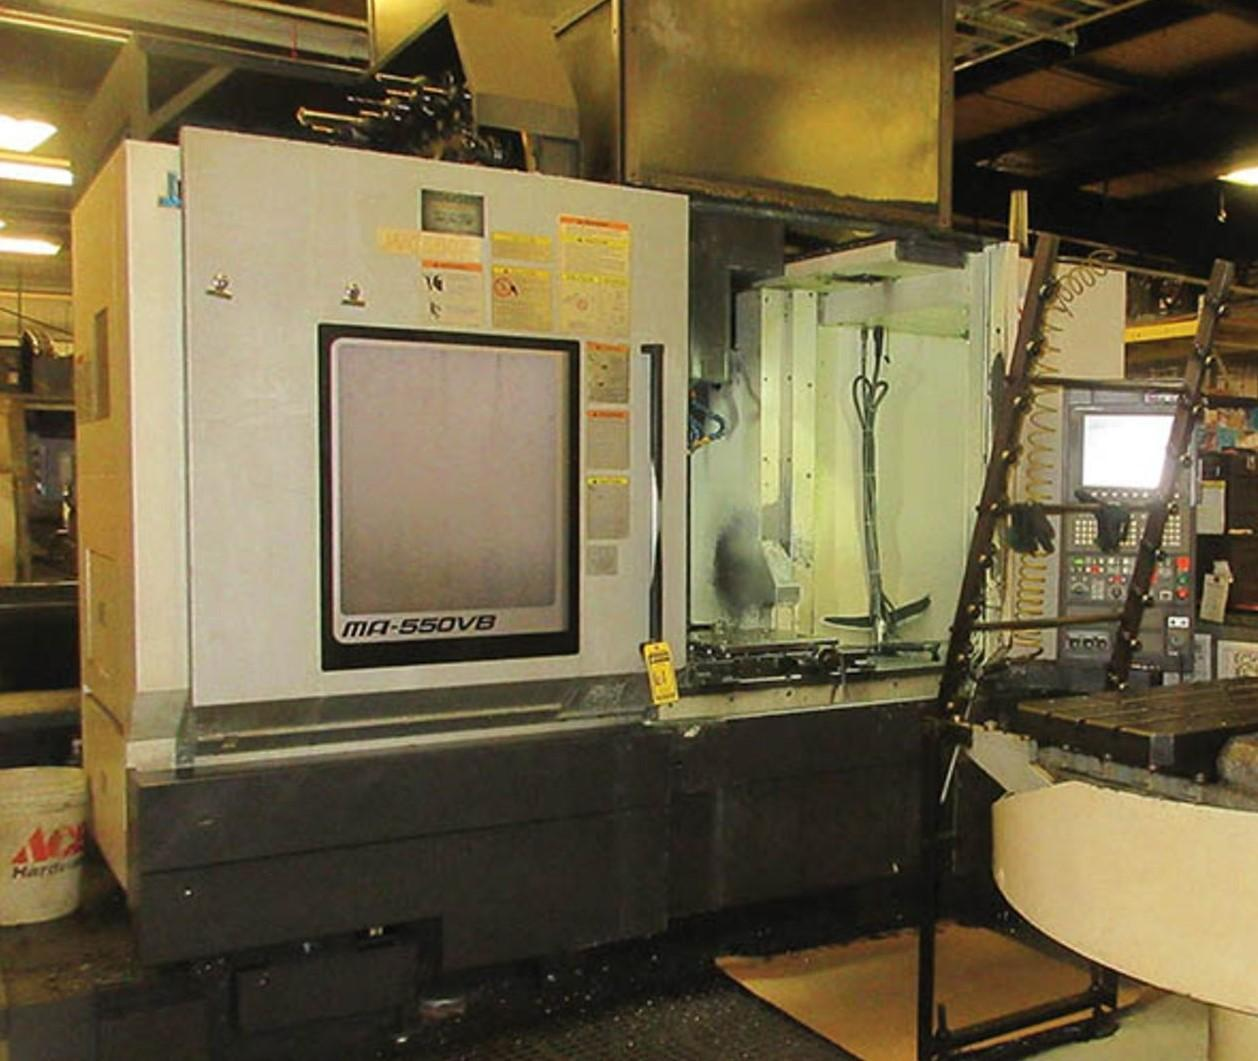 Okuma MA-550VB CNC Vertical Machining Center, OSP300M Control, 51